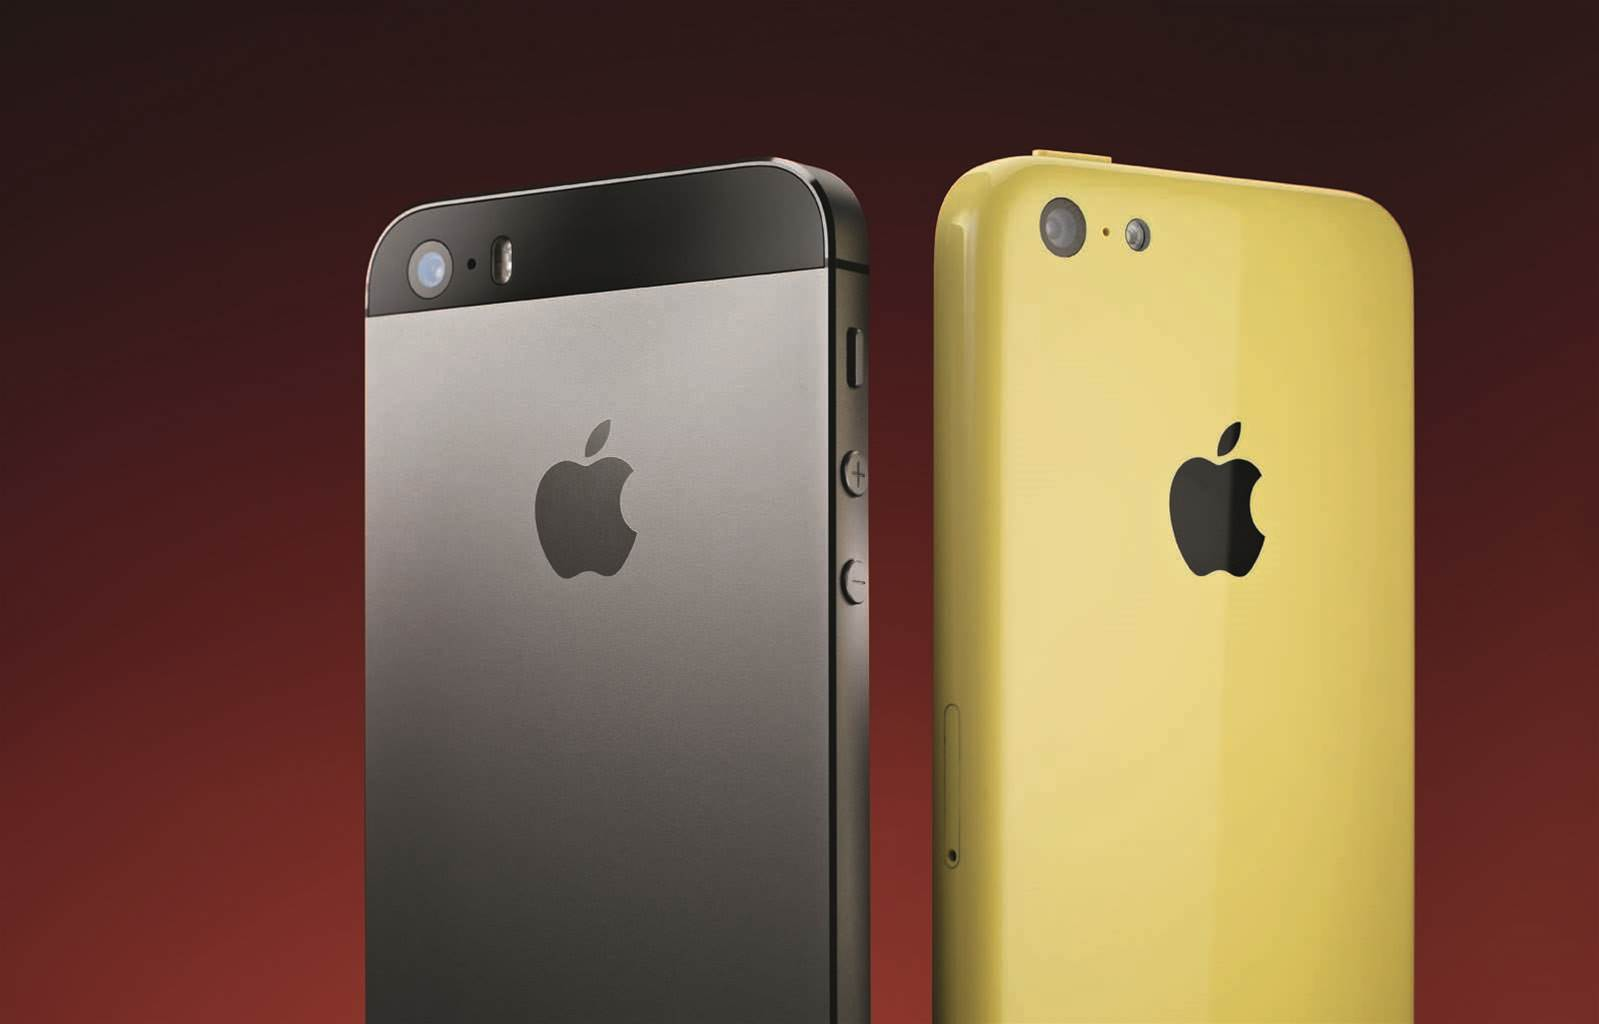 Review: Apple iPhone 5s vs 5c